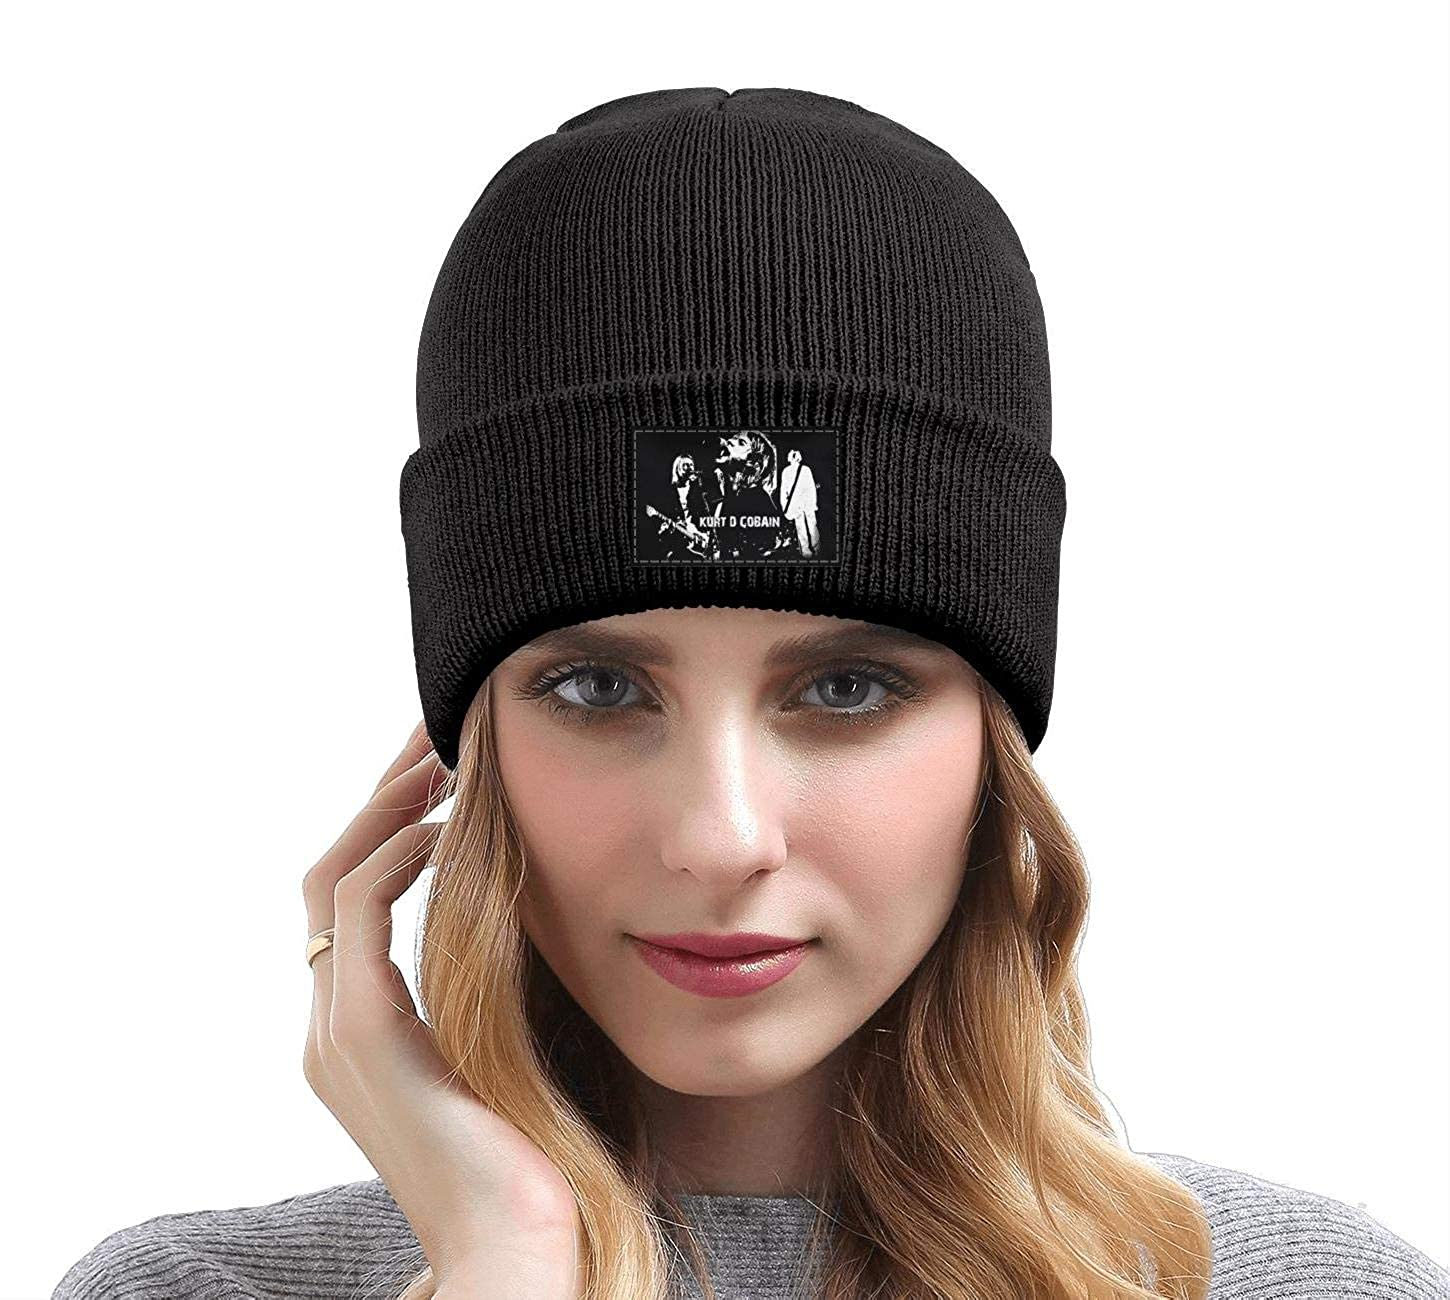 70c468e92 Uuu Hhhyy Kurt-Cobain- Hat Winter Warm Wool Ribbed Watch Cap Black ...